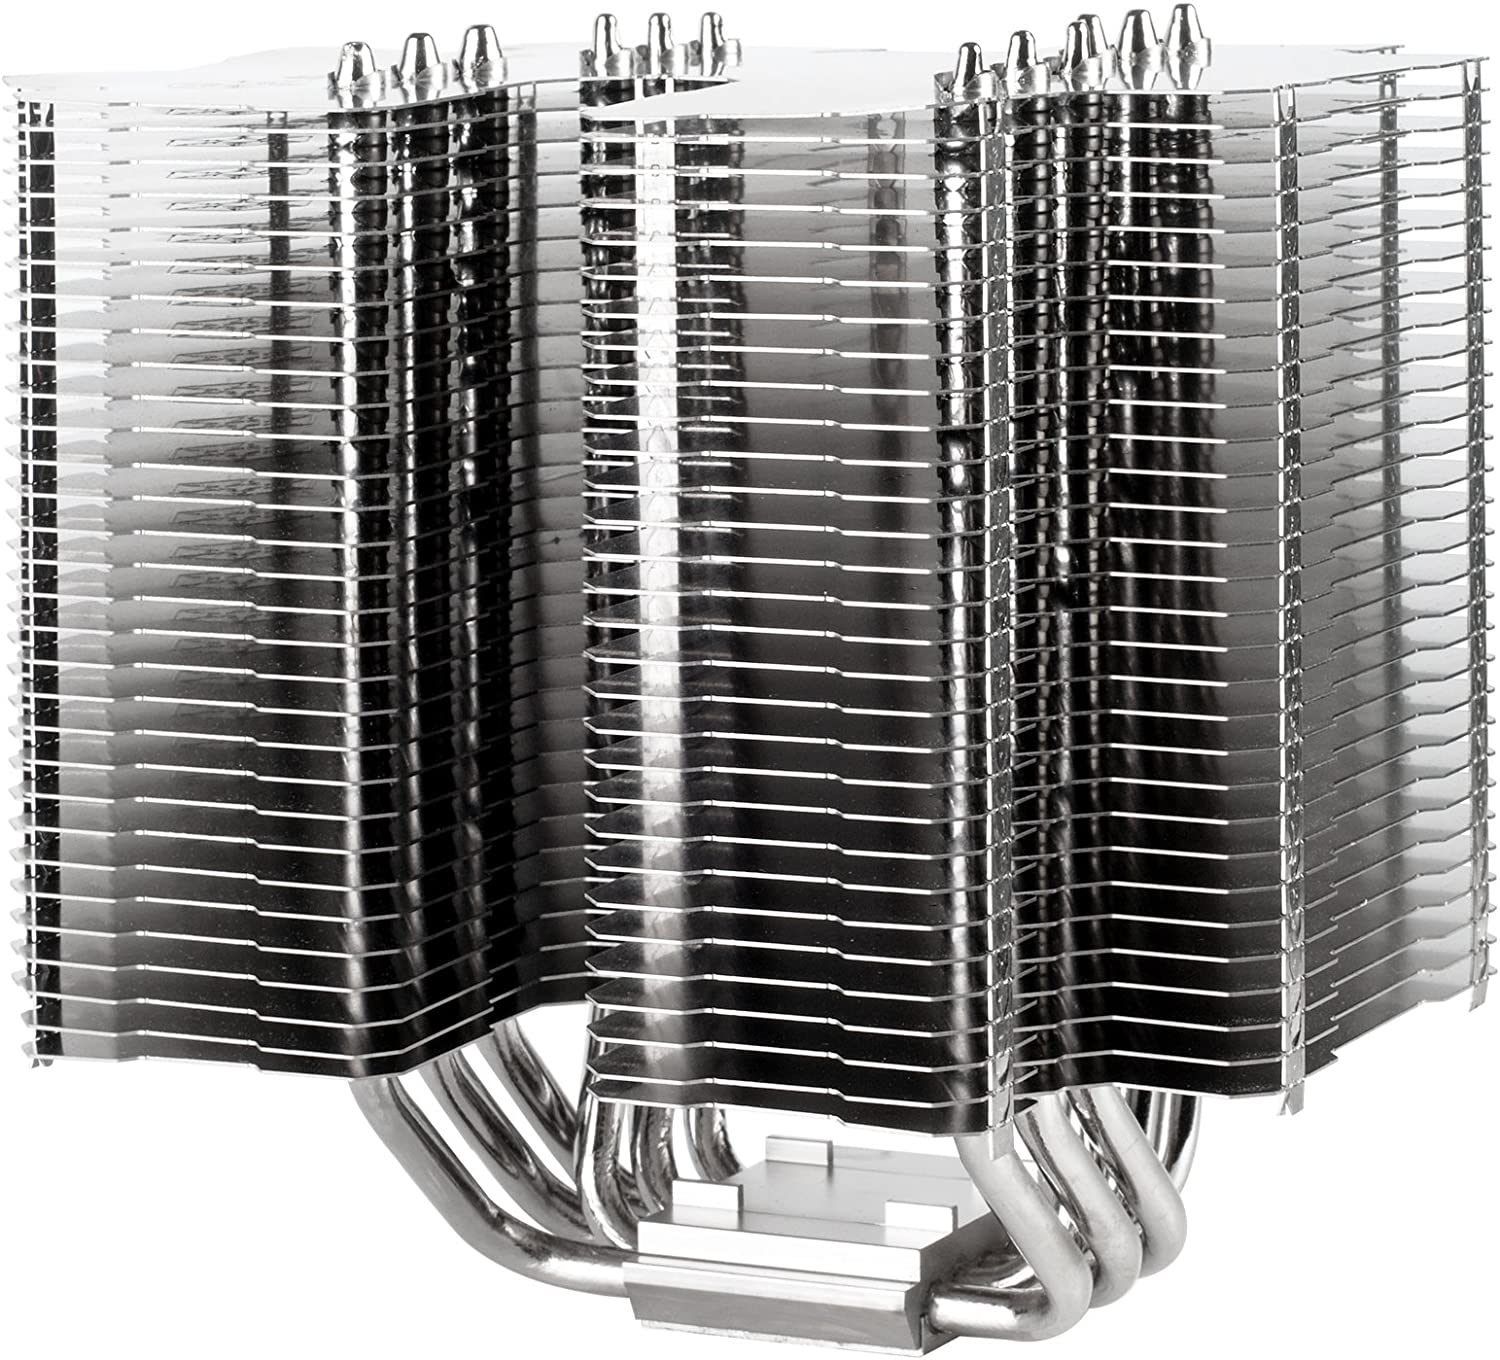 Silverstone SST-HE02-V2 Heligon CPU Cooler AM4 Ready Intel//AMD Superior Silence and Performance